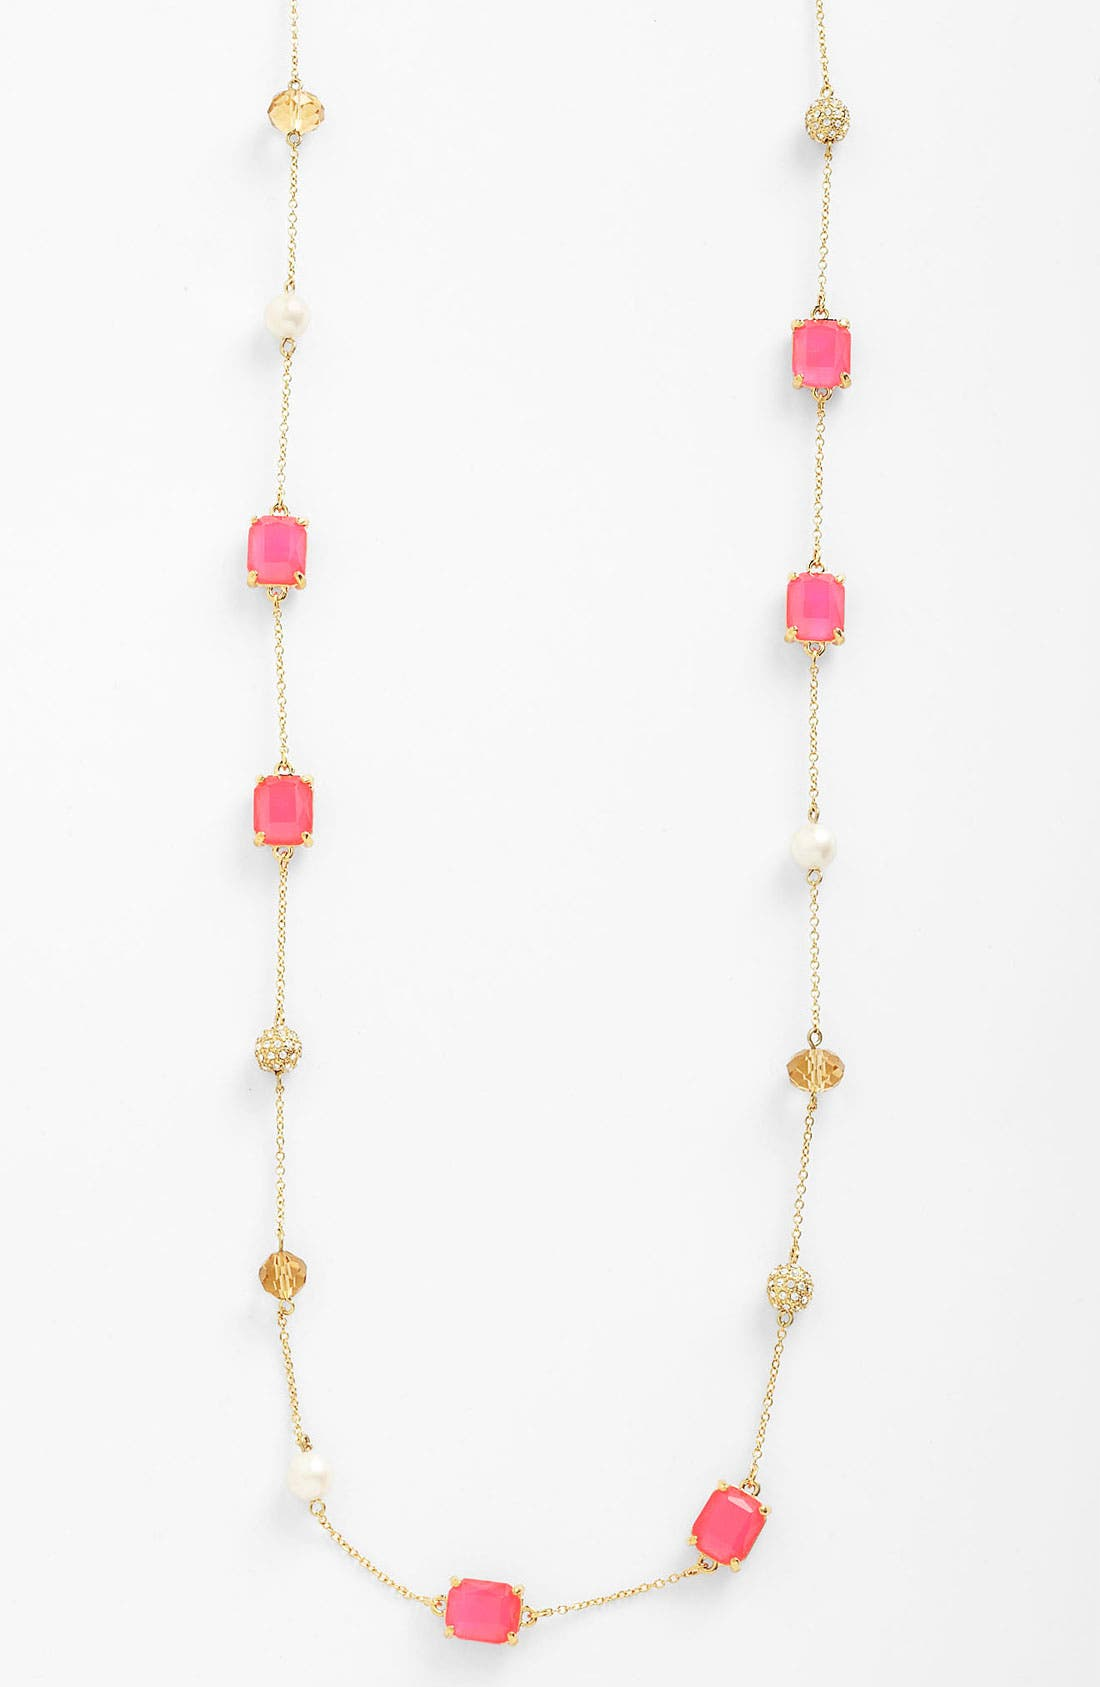 Main Image - kate spade new york 'bijoux bijoux' long station necklace